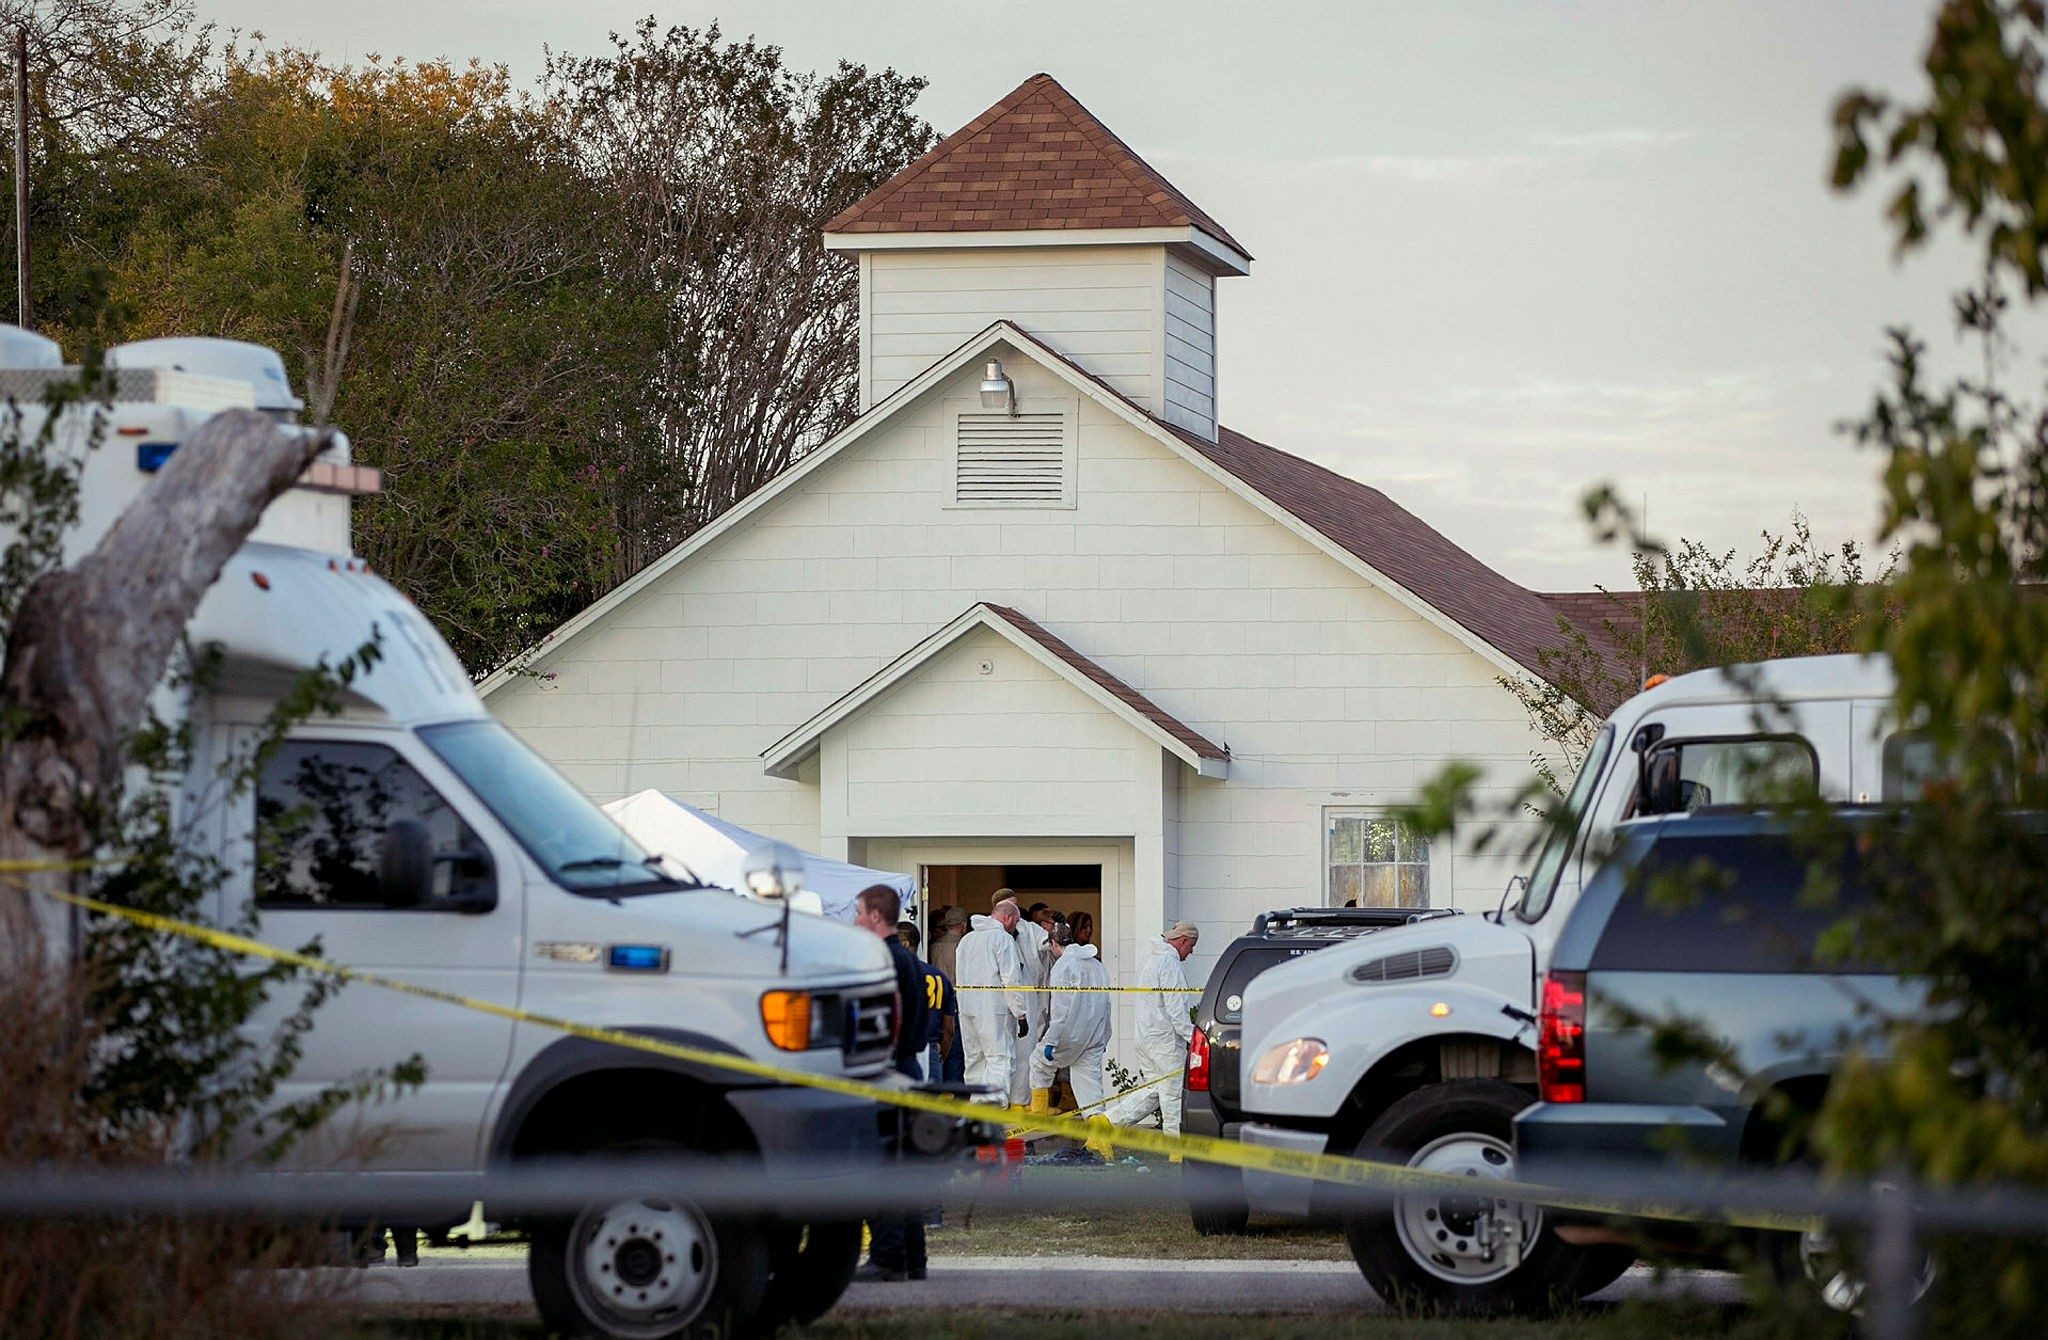 Investigators work at the scene of a deadly shooting at the First Baptist Church in Sutherland Springs, Texas, Nov. 5.